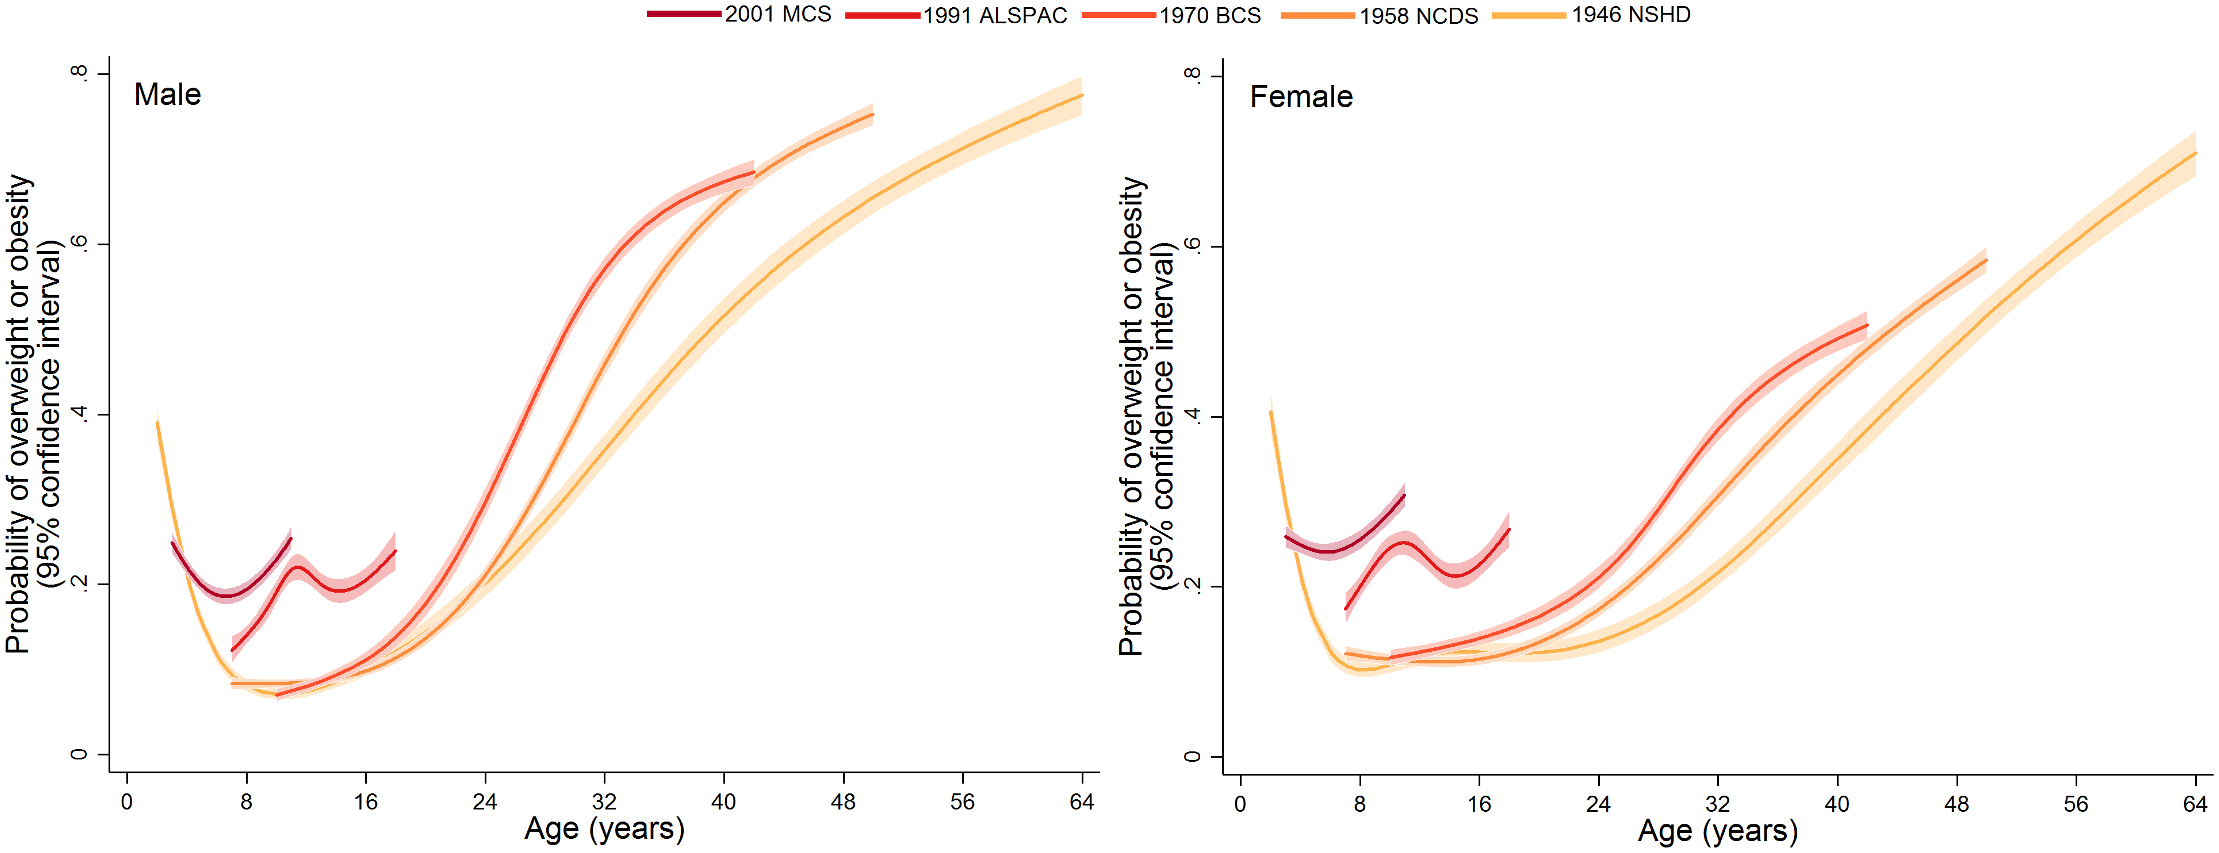 Trajectories of the probability of overweight or obesity (versus normal weight) from sex- and study-stratified multilevel logistic regression models.